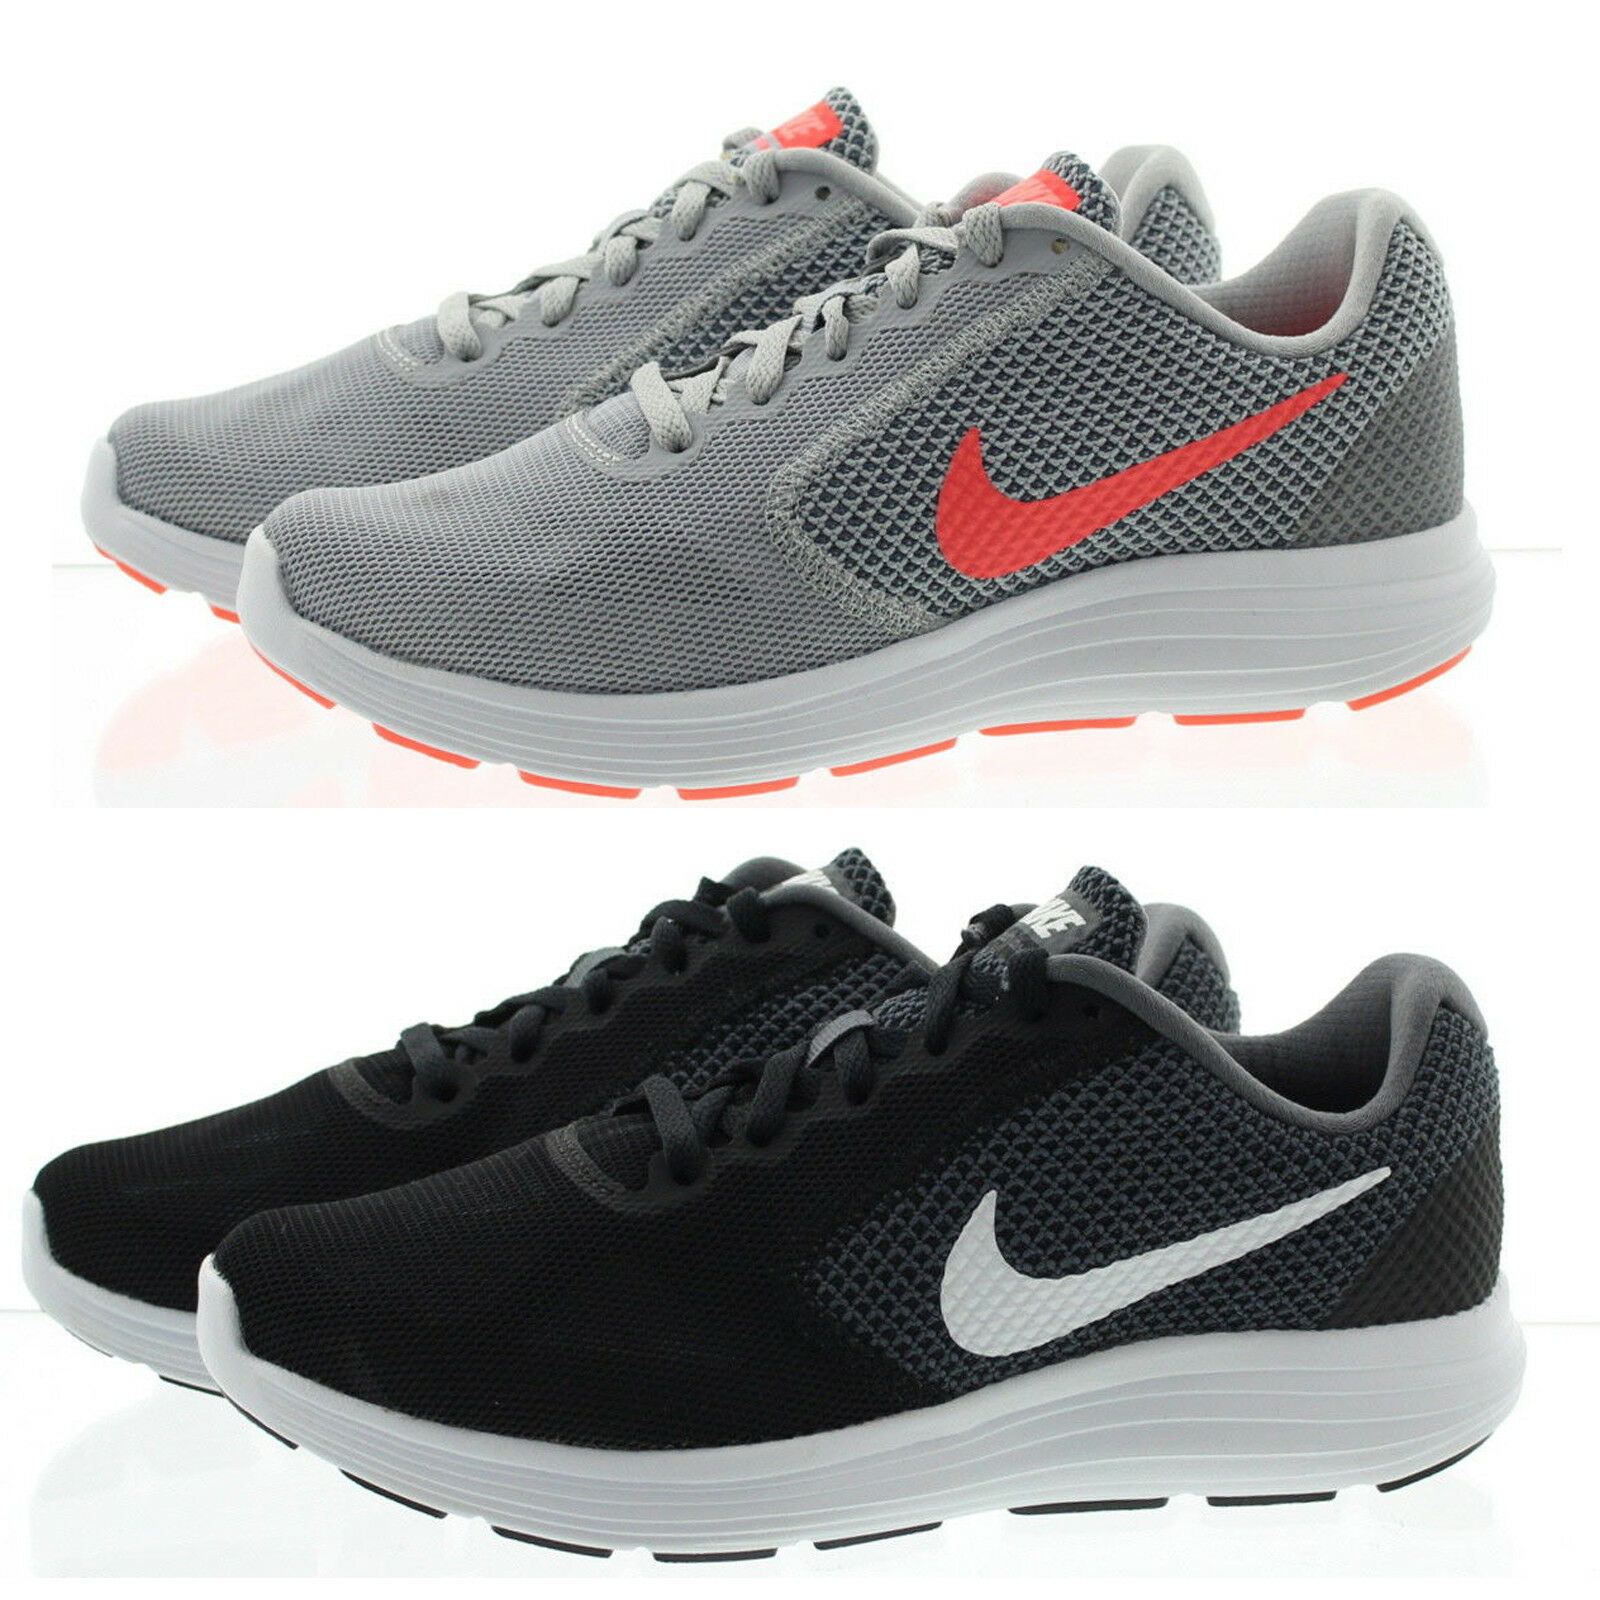 Nike 819302 3 Womens Revolution 3 819302 Running Training Low Top Shoes Sneakers 6efc85